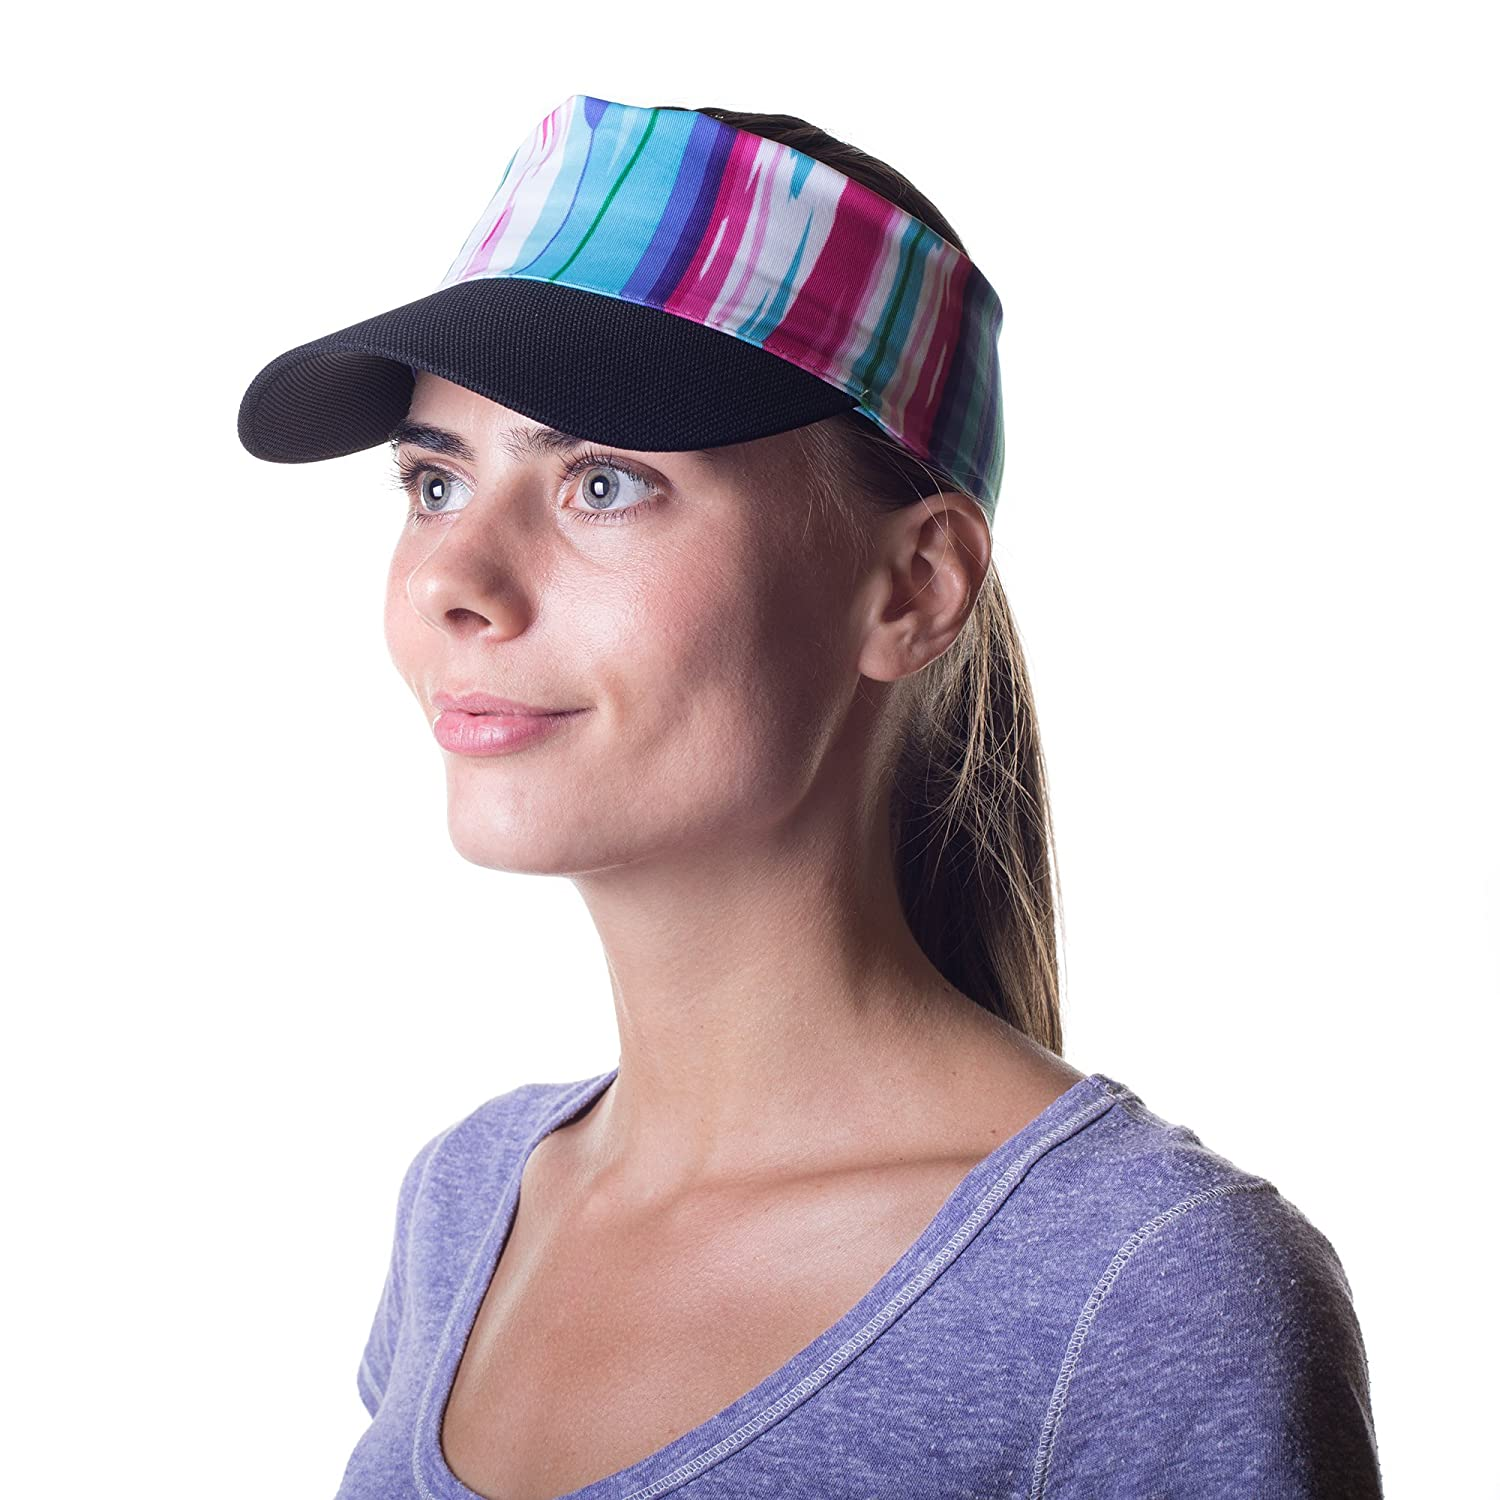 Women s Sun Visor Hat with Ponytail Hole UV Protection Shade Cap with Wide  Brim Multi-Color Head-wrap for Active Lifestyle 575e0639c3a